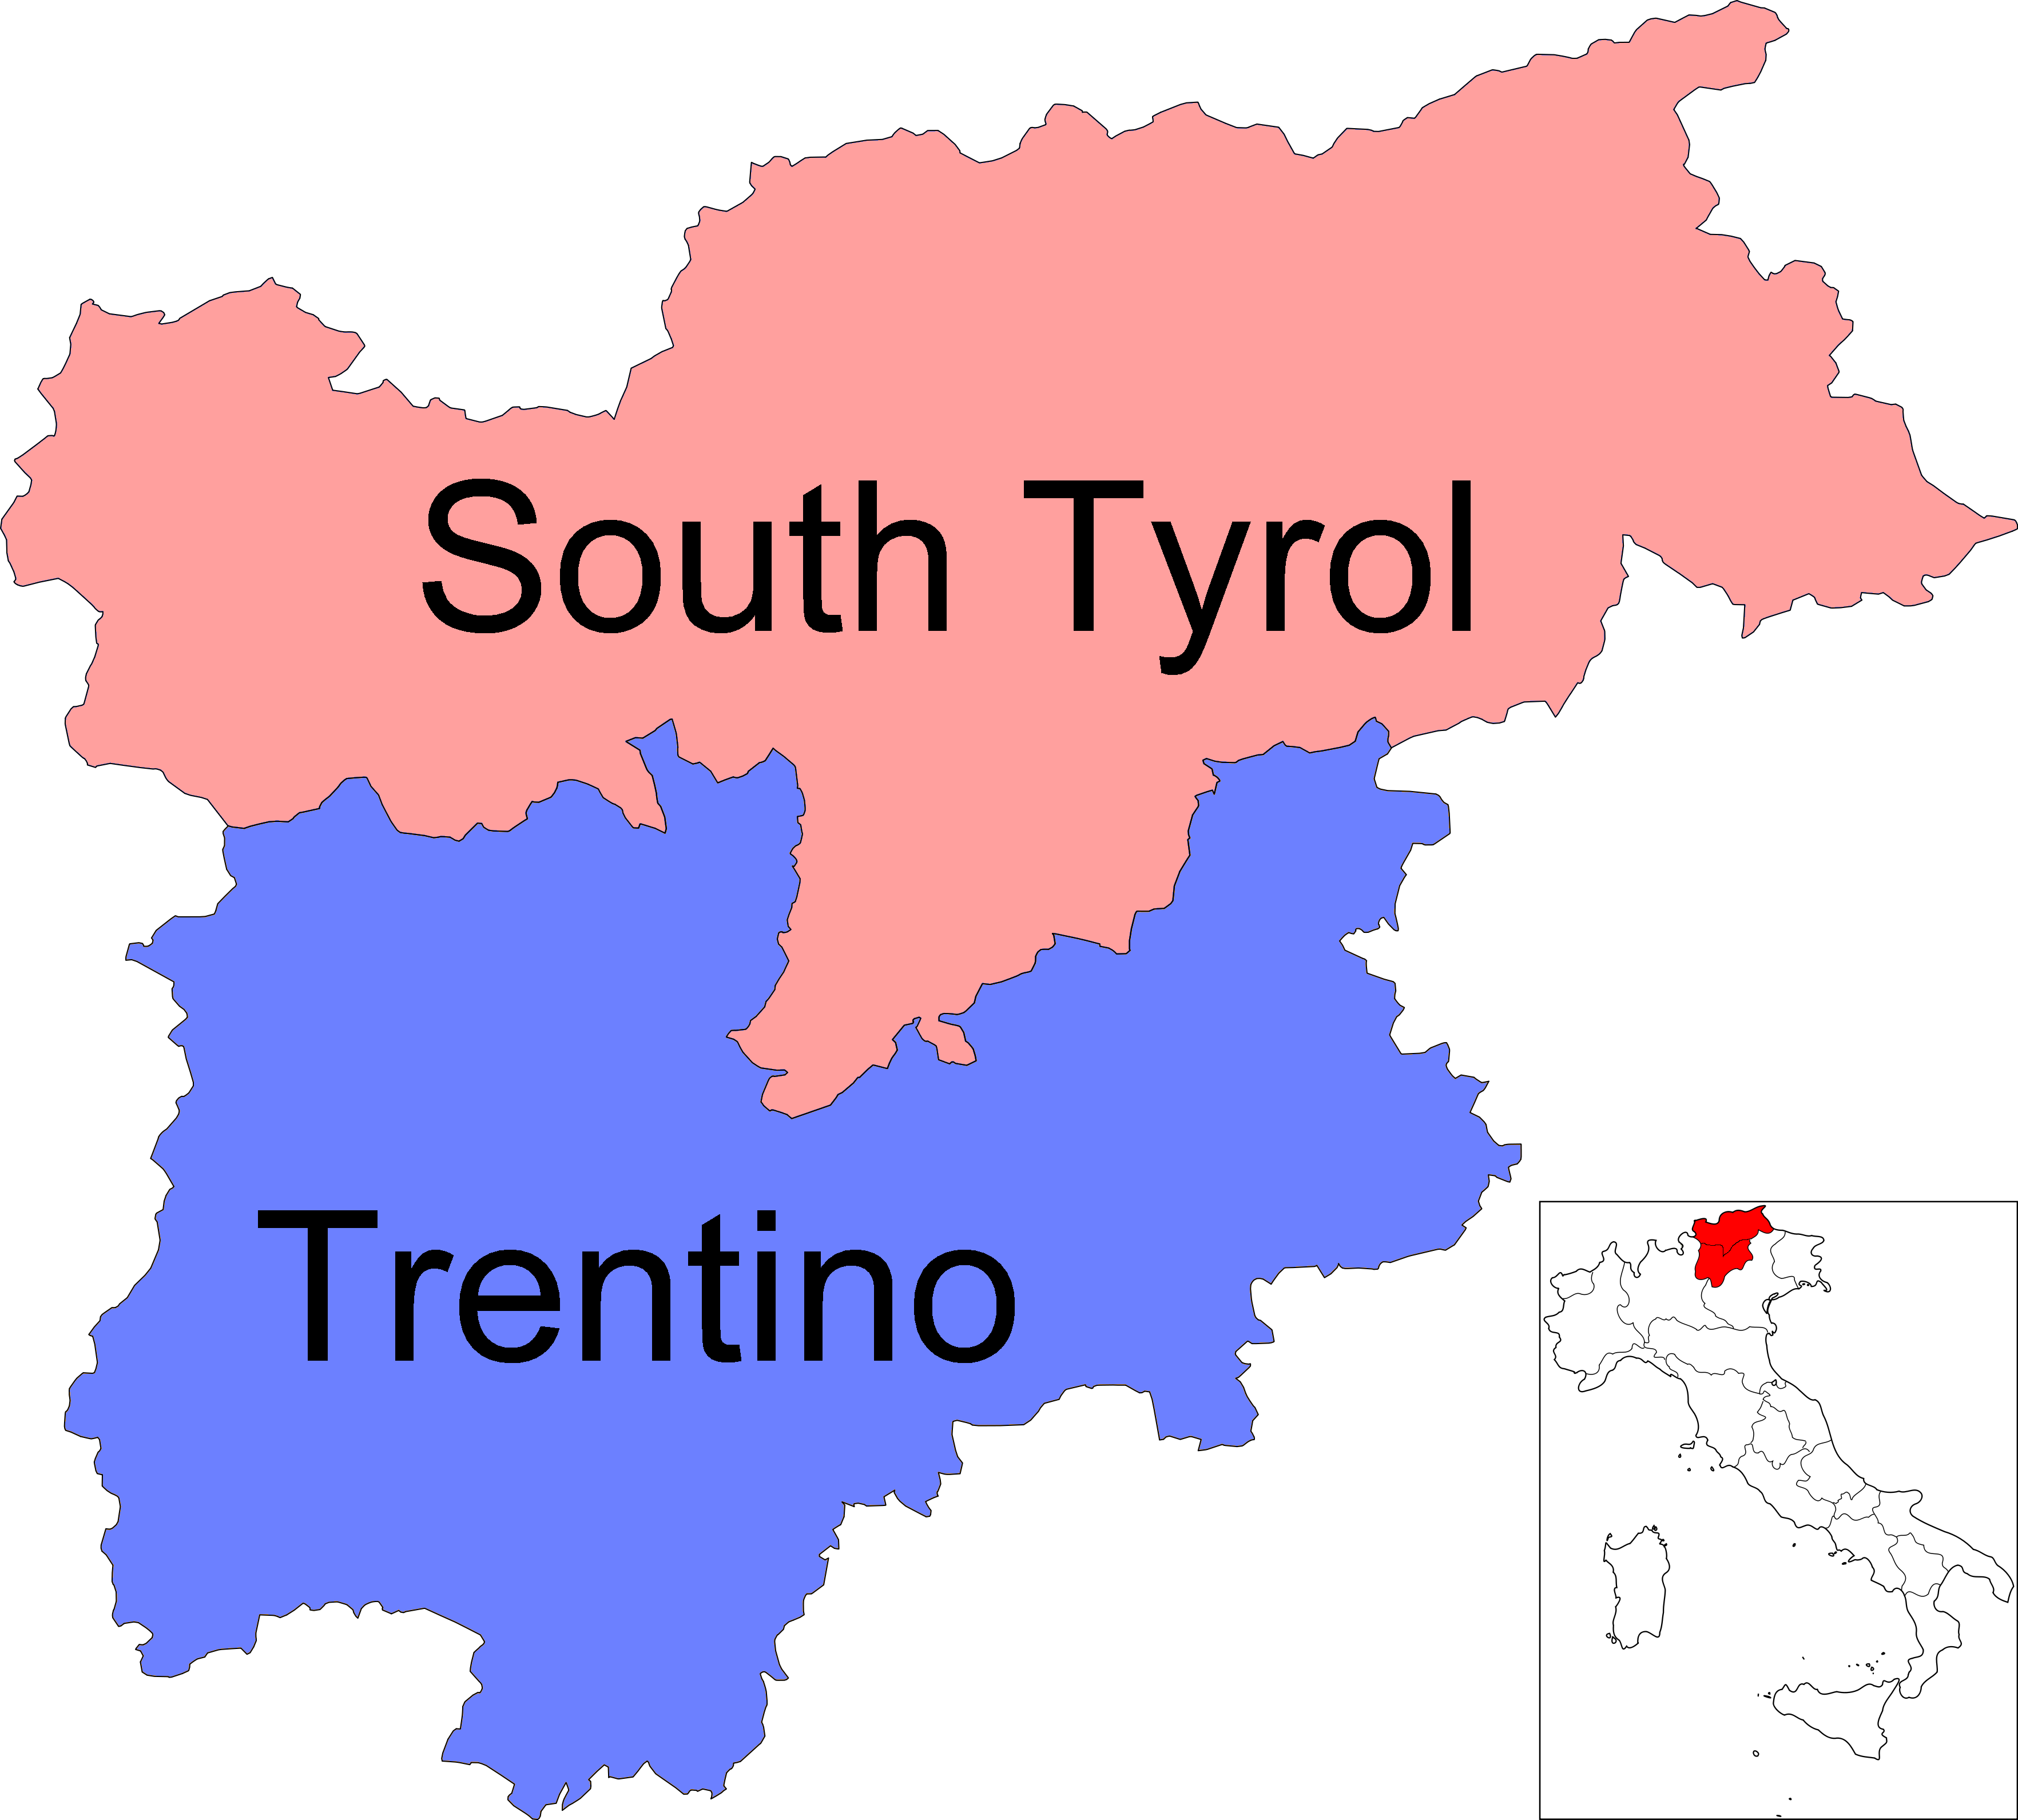 File:Map of region of Trentino South Tyrol, Italy, with provinces